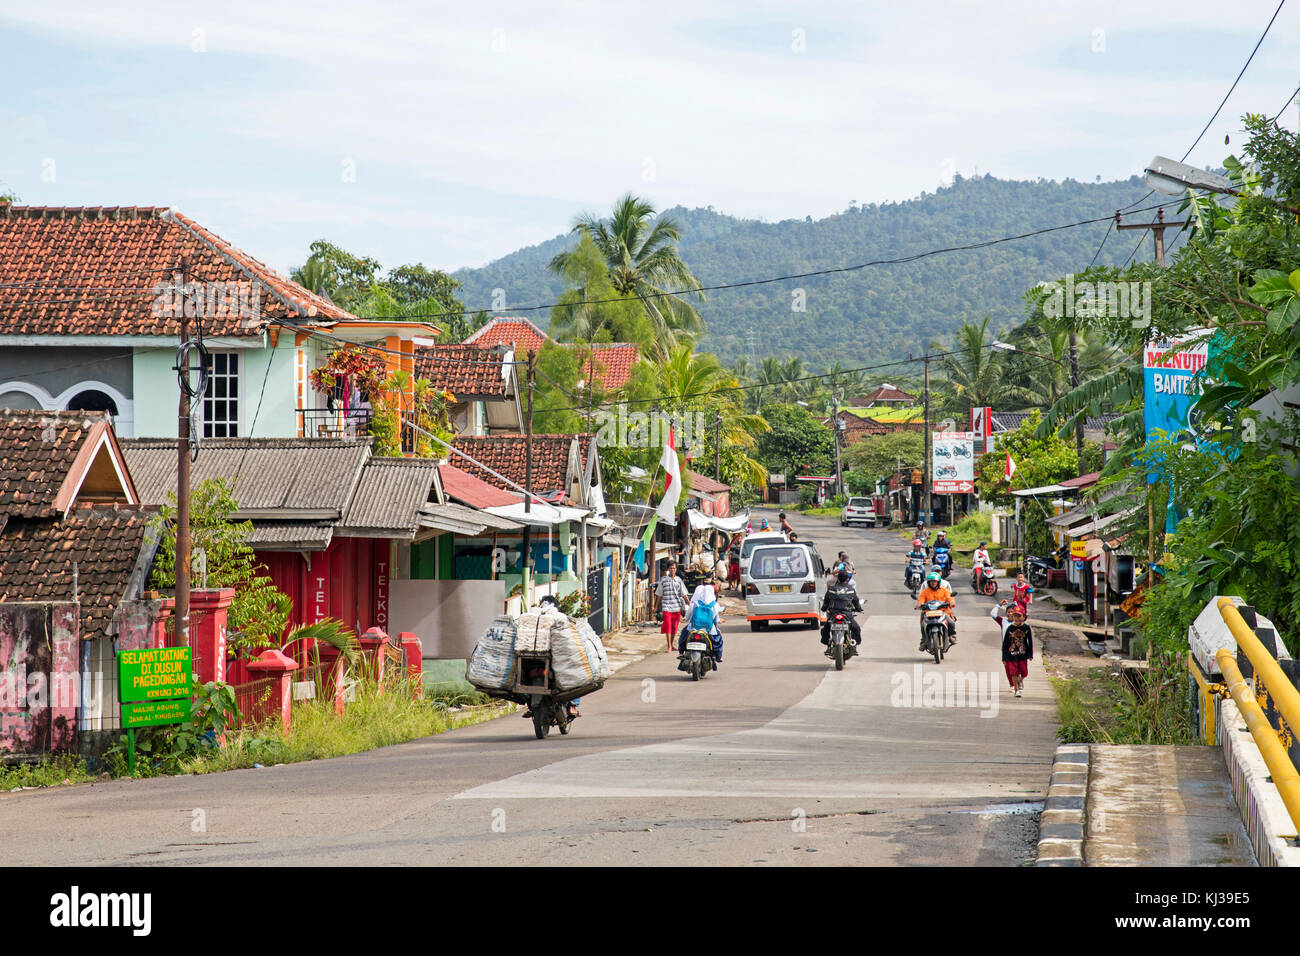 Street scene showing motorbikes in the coastal town Carita, Pandeglang Regency, Banten Province, West Java, Indonesia - Stock Image